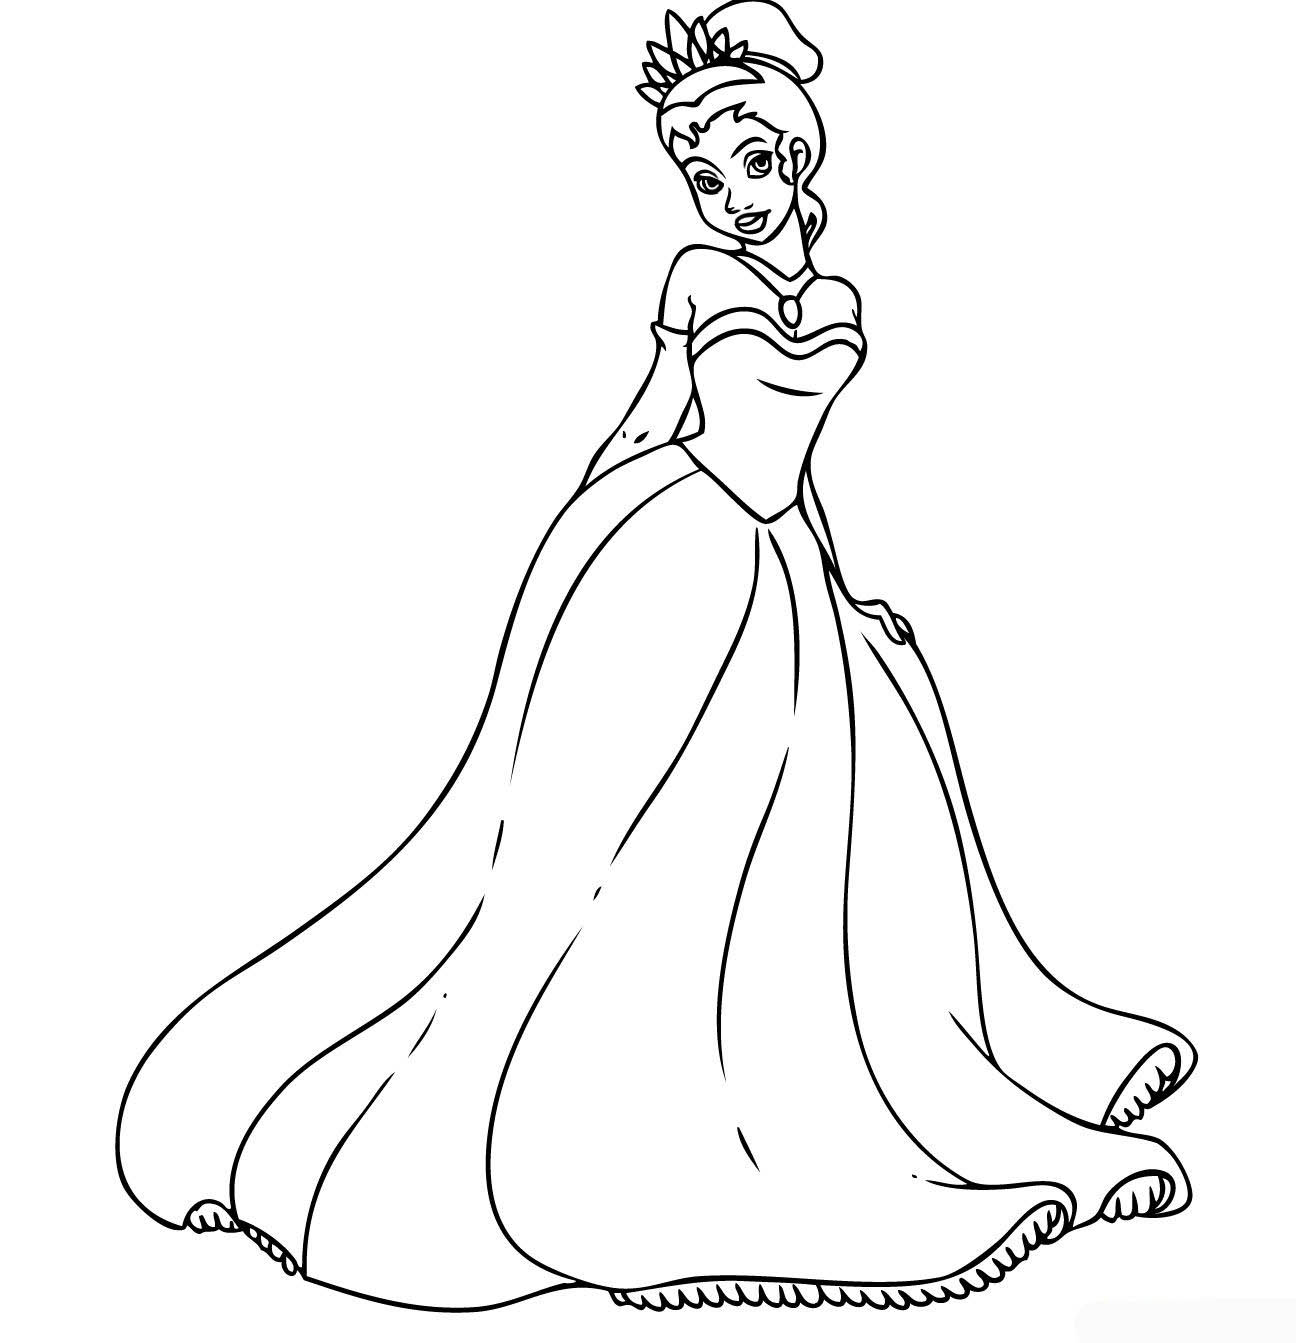 printable princess coloring pages online - photo#15